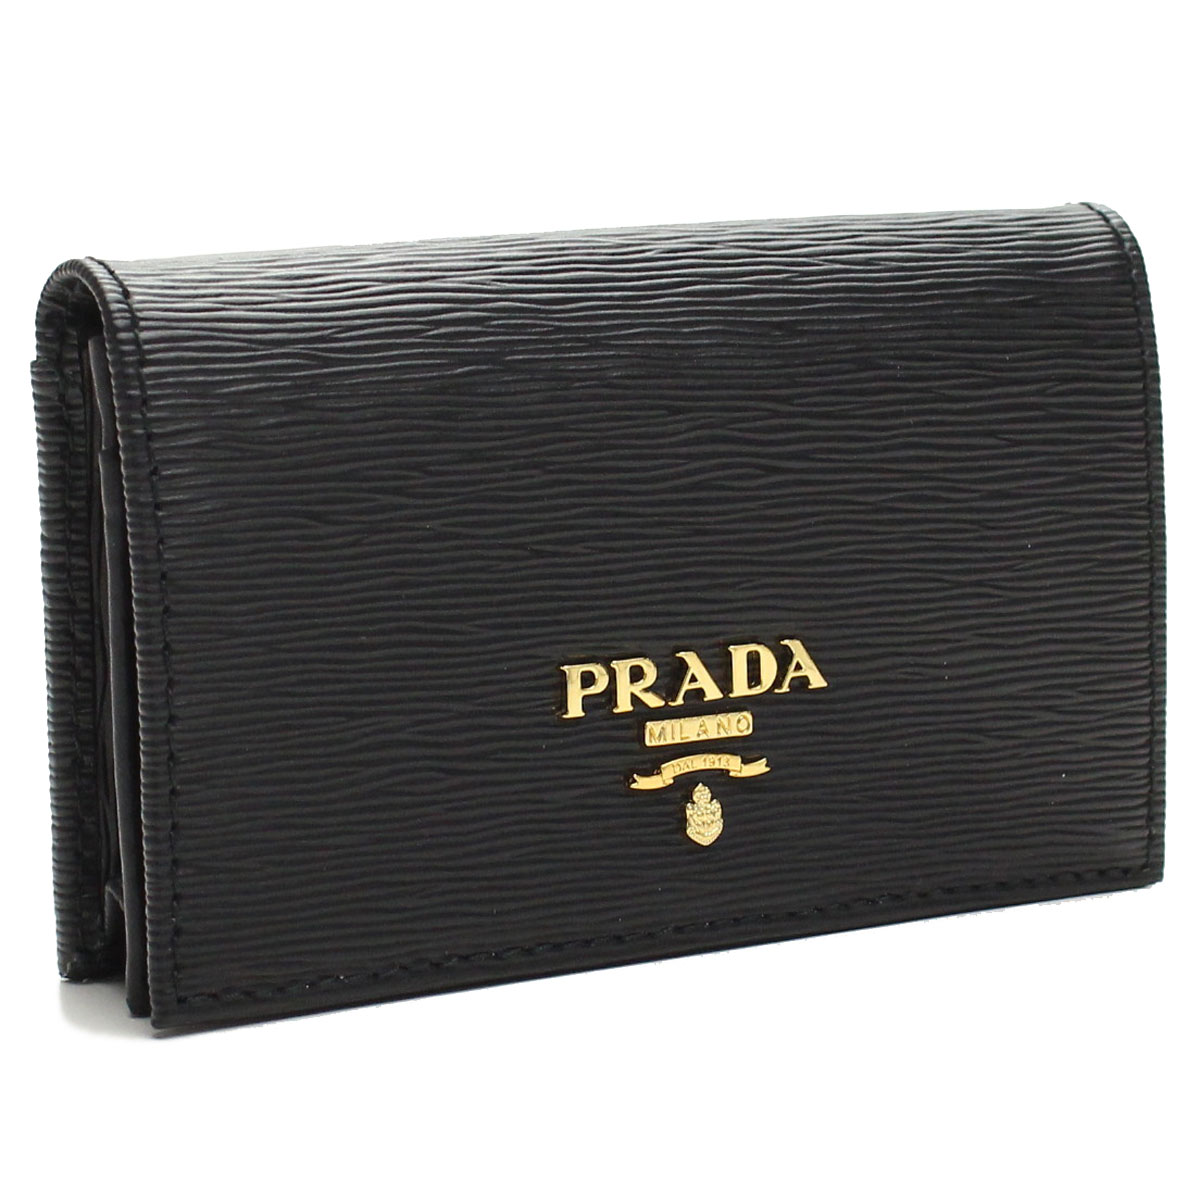 finest selection 60709 cb391 Prada outlet PRADA (OUTLET) business card holder 1MC122-O-2EZZ-F0002 NERO  black( taxfree/send by EMS/authentic/A brand new item )